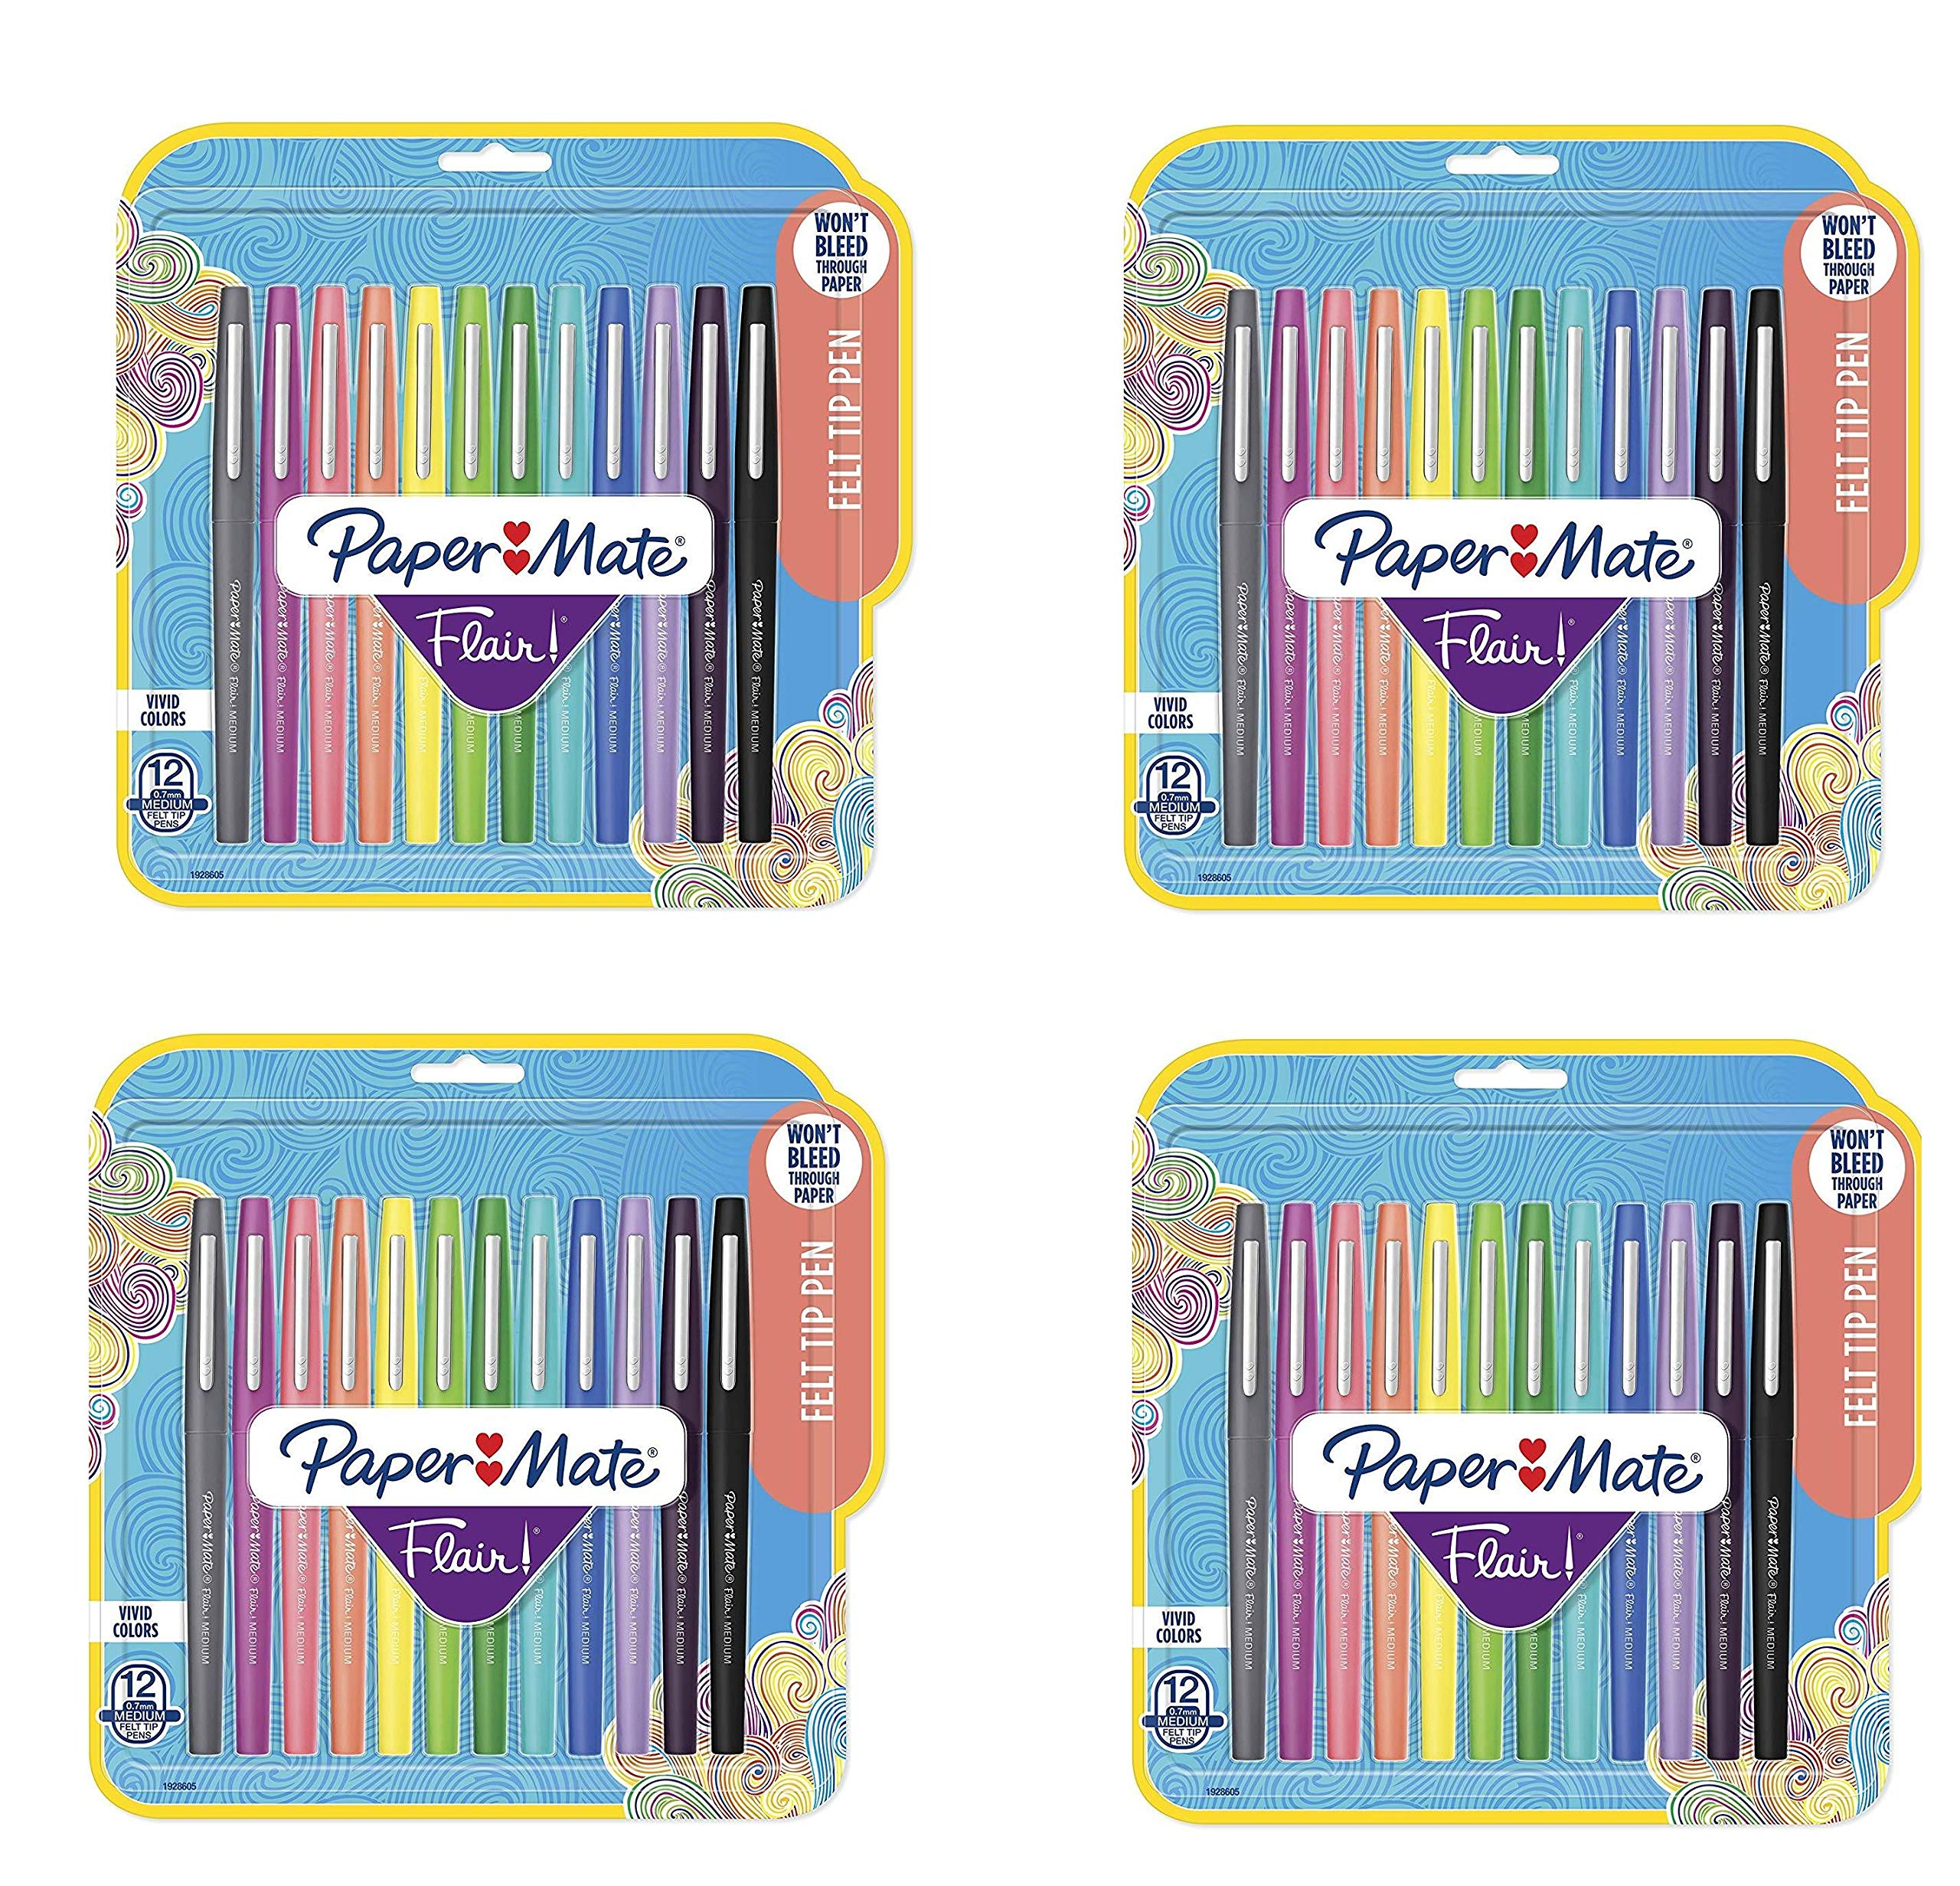 1928605 Flair Felt Tip Pens, Medium Point (0.7mm), Tropical and Classic Colors, 12 Count